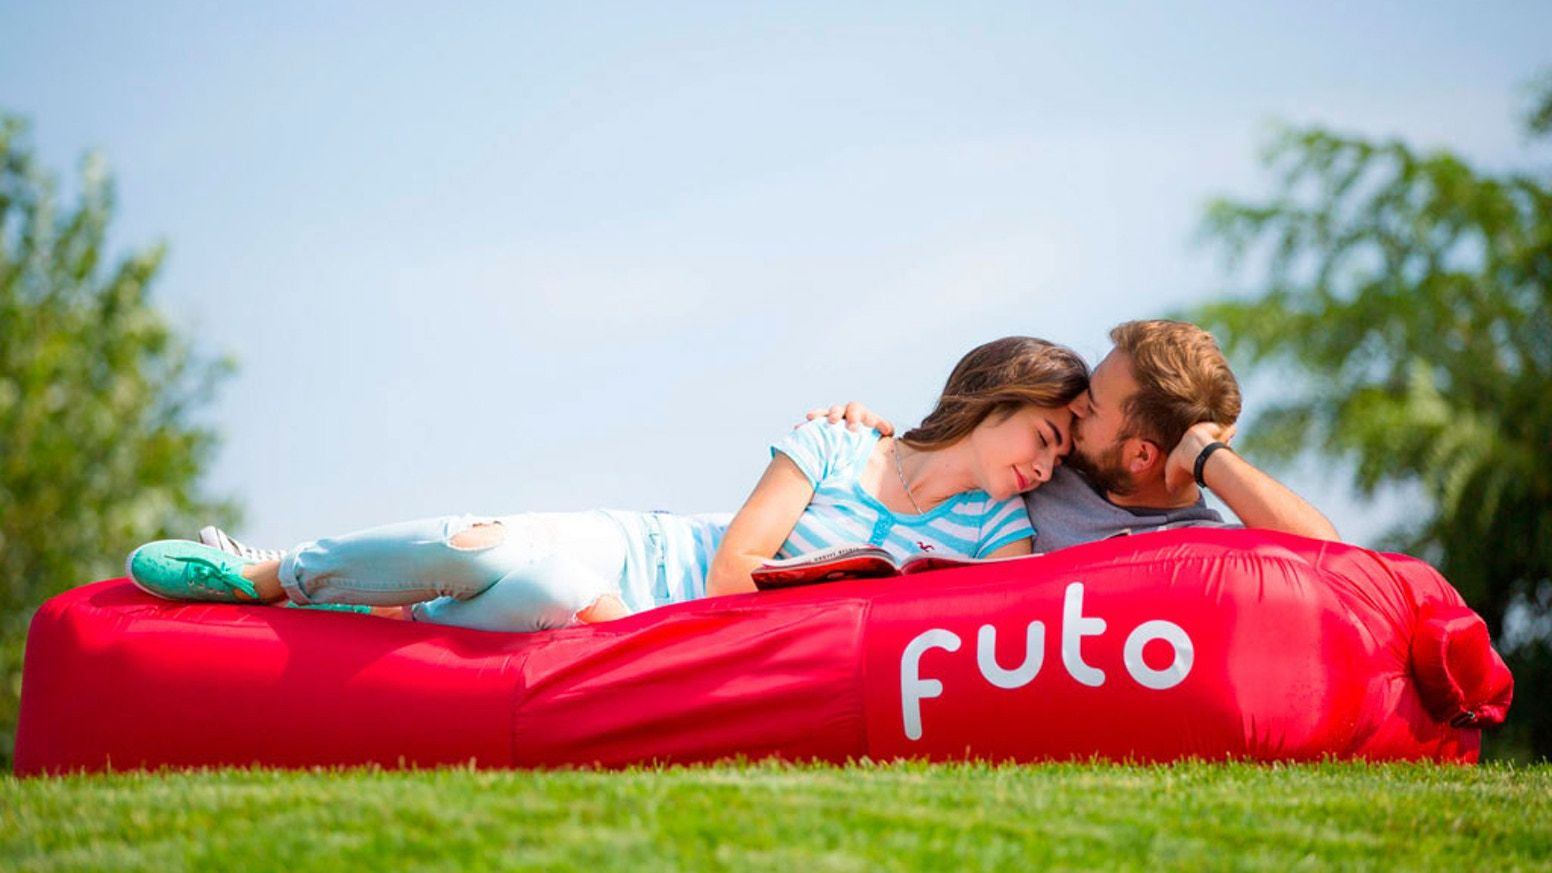 The Last Air Mattress And Pillow You Will Ever Need Easy To Inflate Comfortable Durable Colorful And Easy To Car Air Mattress Camping Air Mattress Mattress